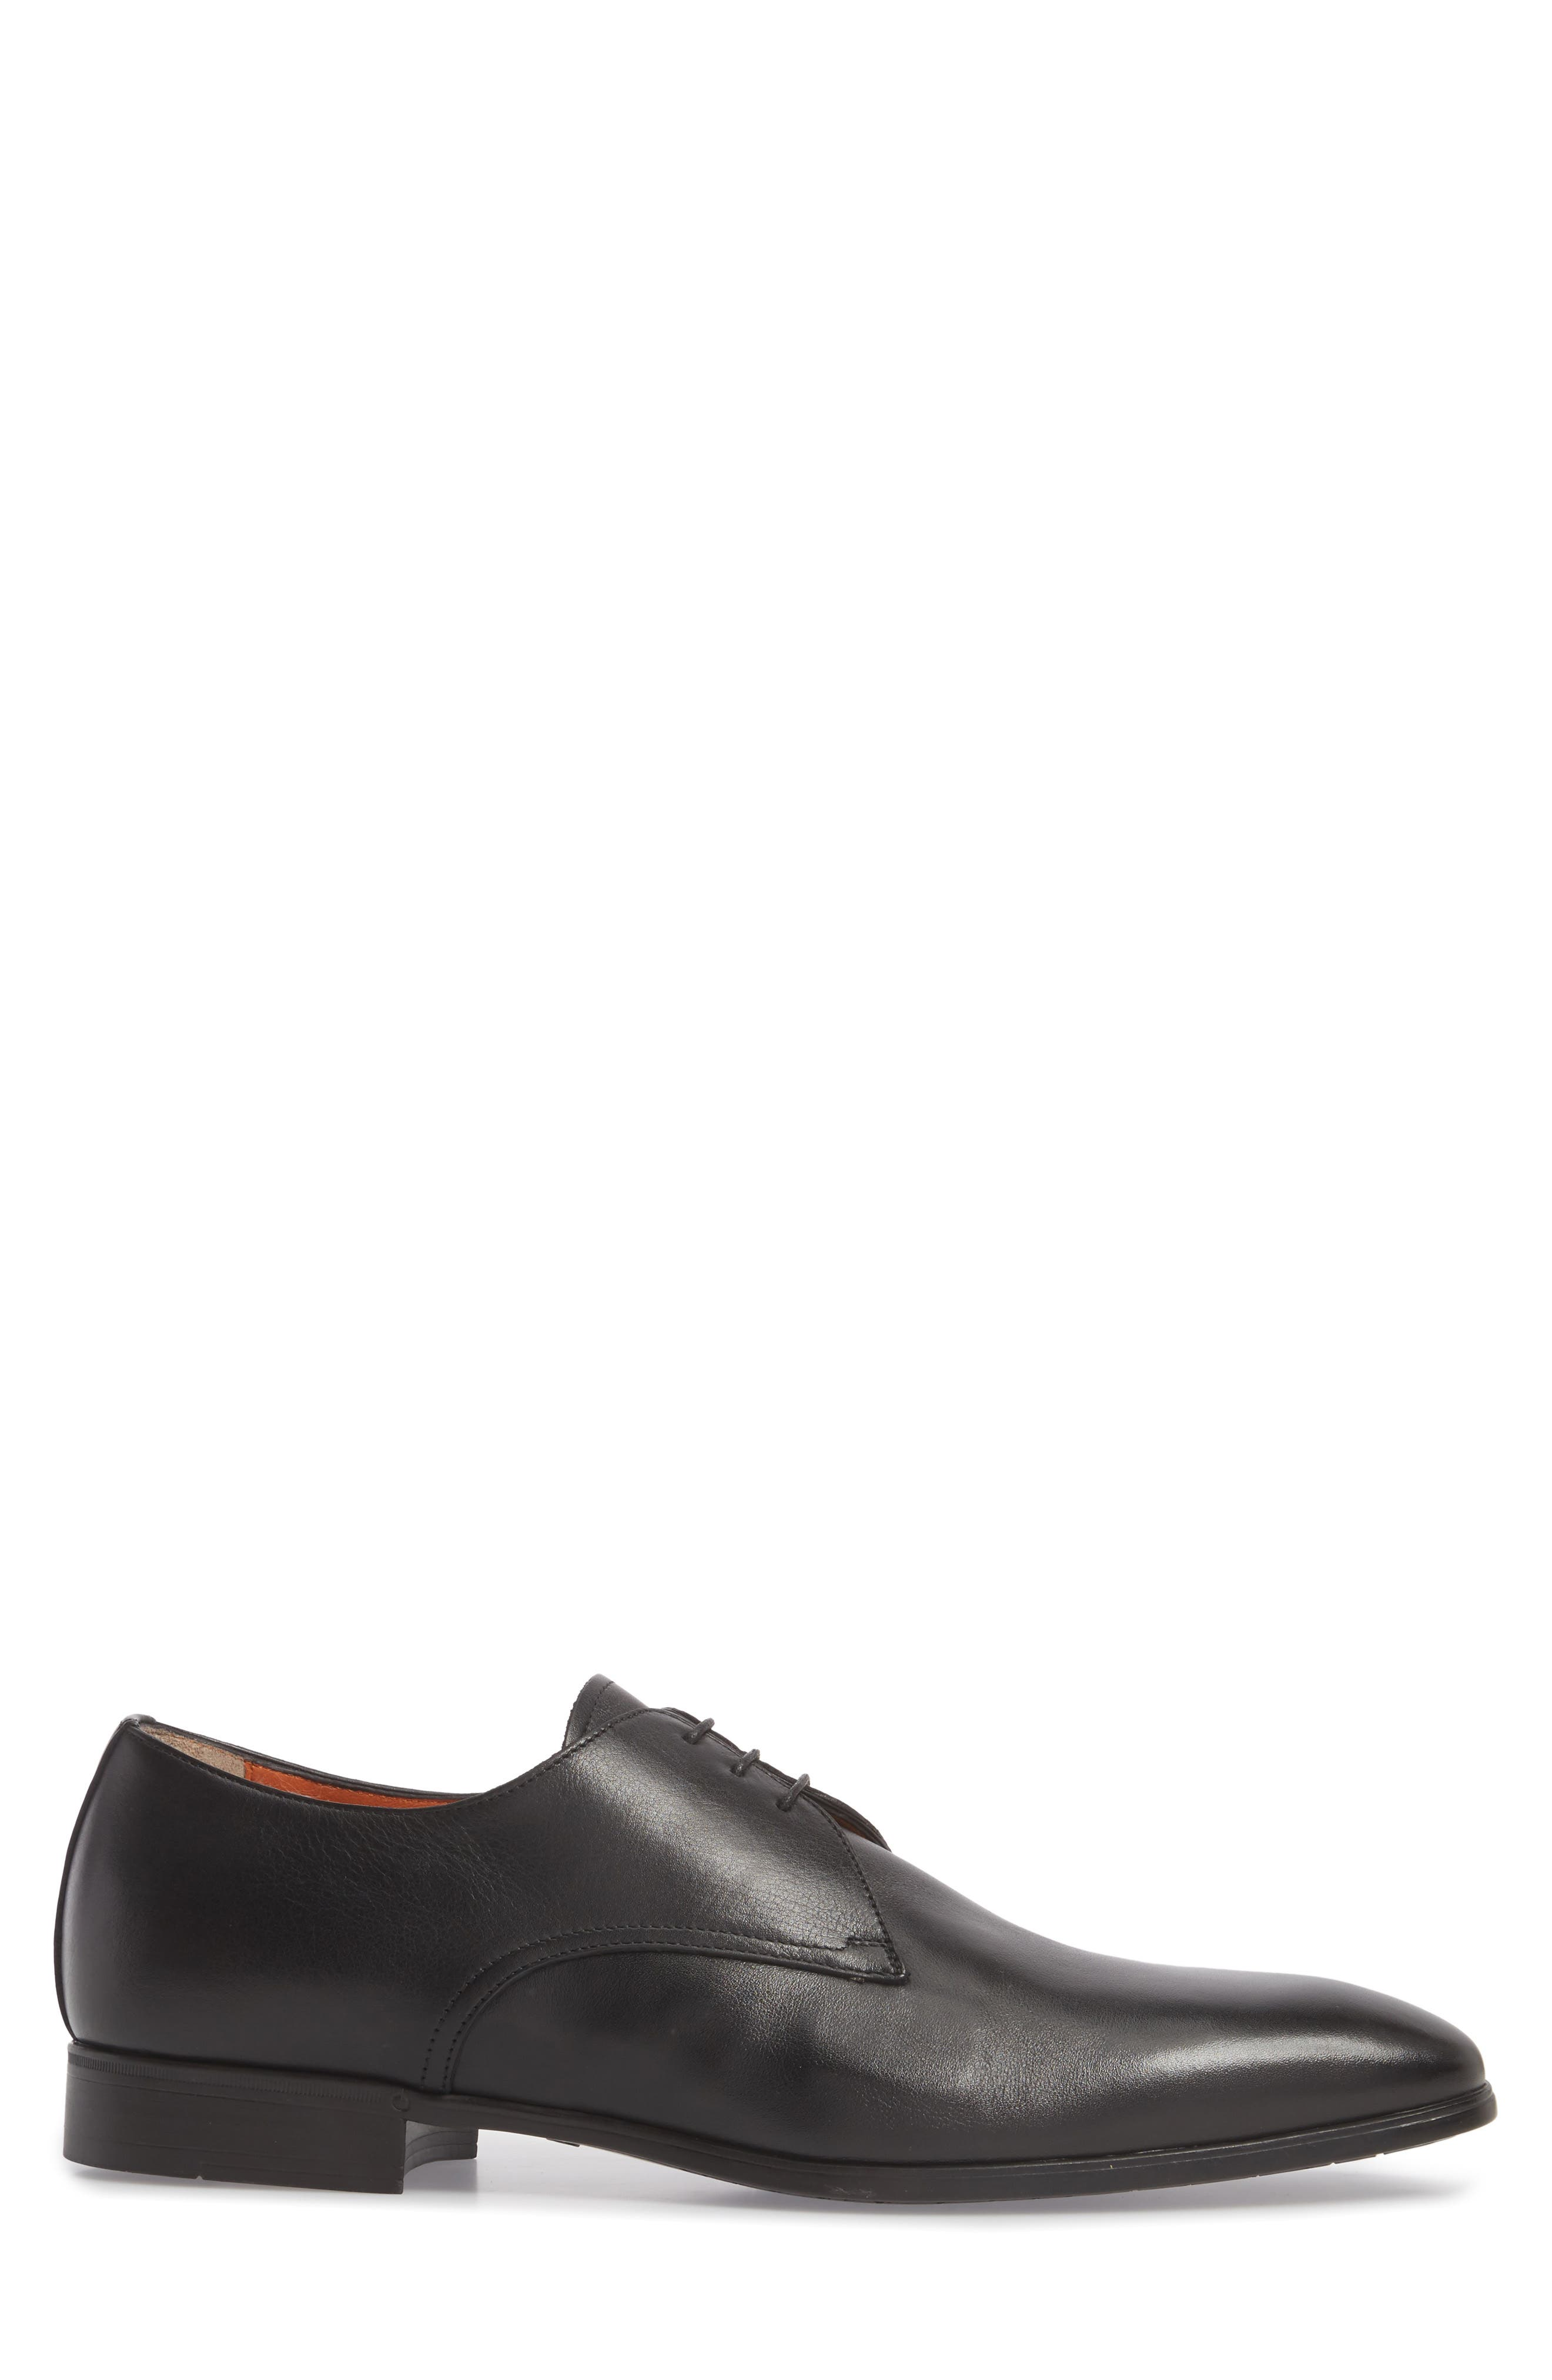 SANTONI,                             Glenn Plain Toe Derby,                             Alternate thumbnail 3, color,                             001